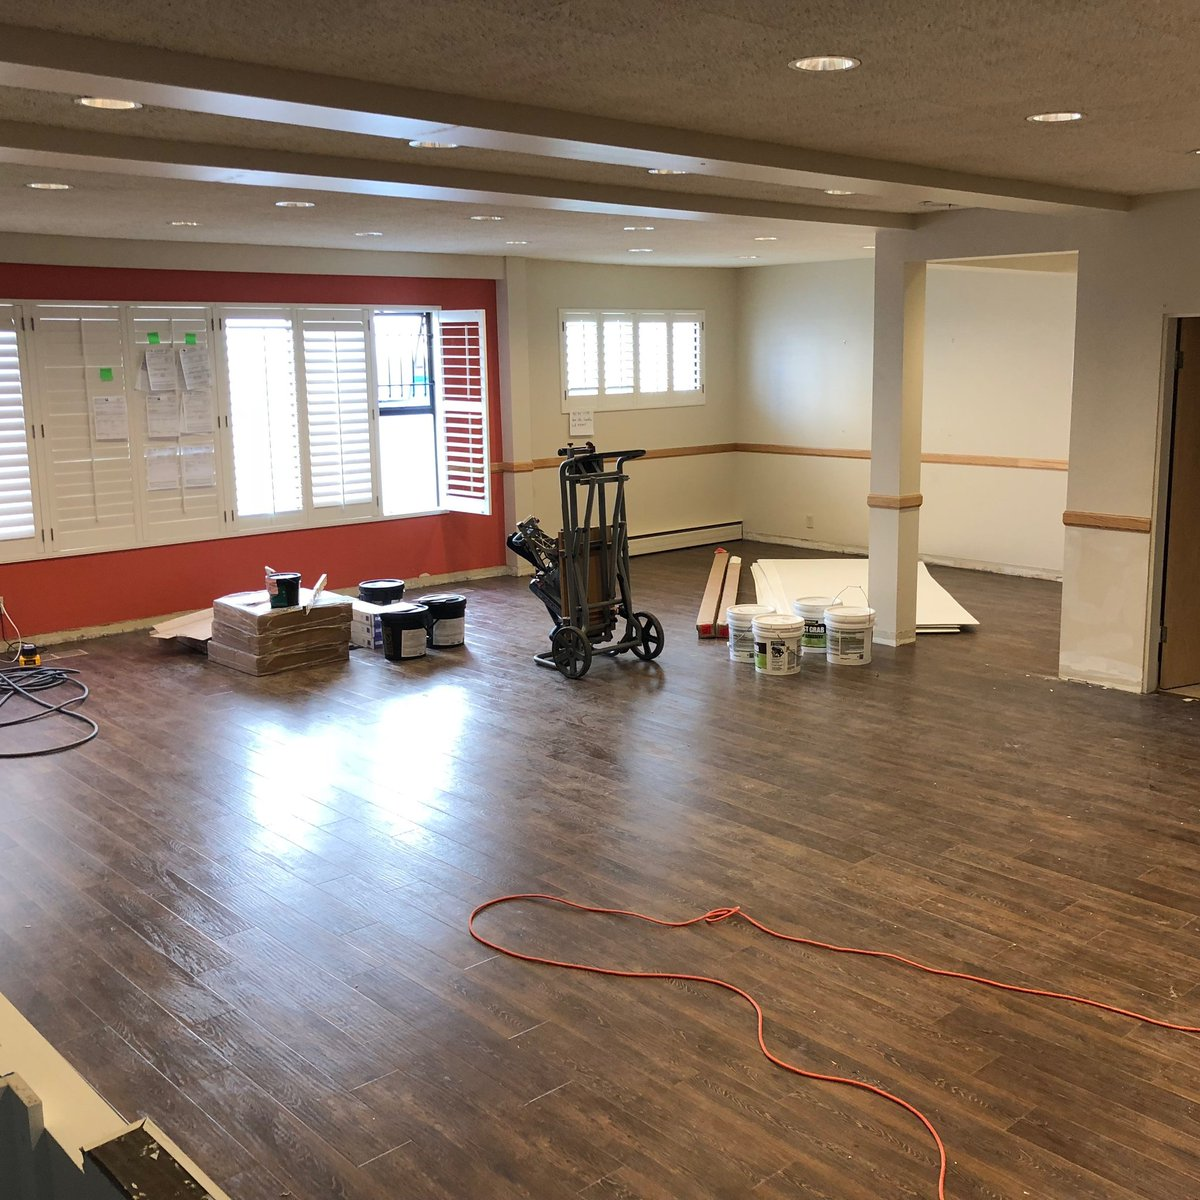 The Epoxy Floor And Commercial Walls Are Installed In Kitchen Meeting Room Has A New White Board For Study Group Work